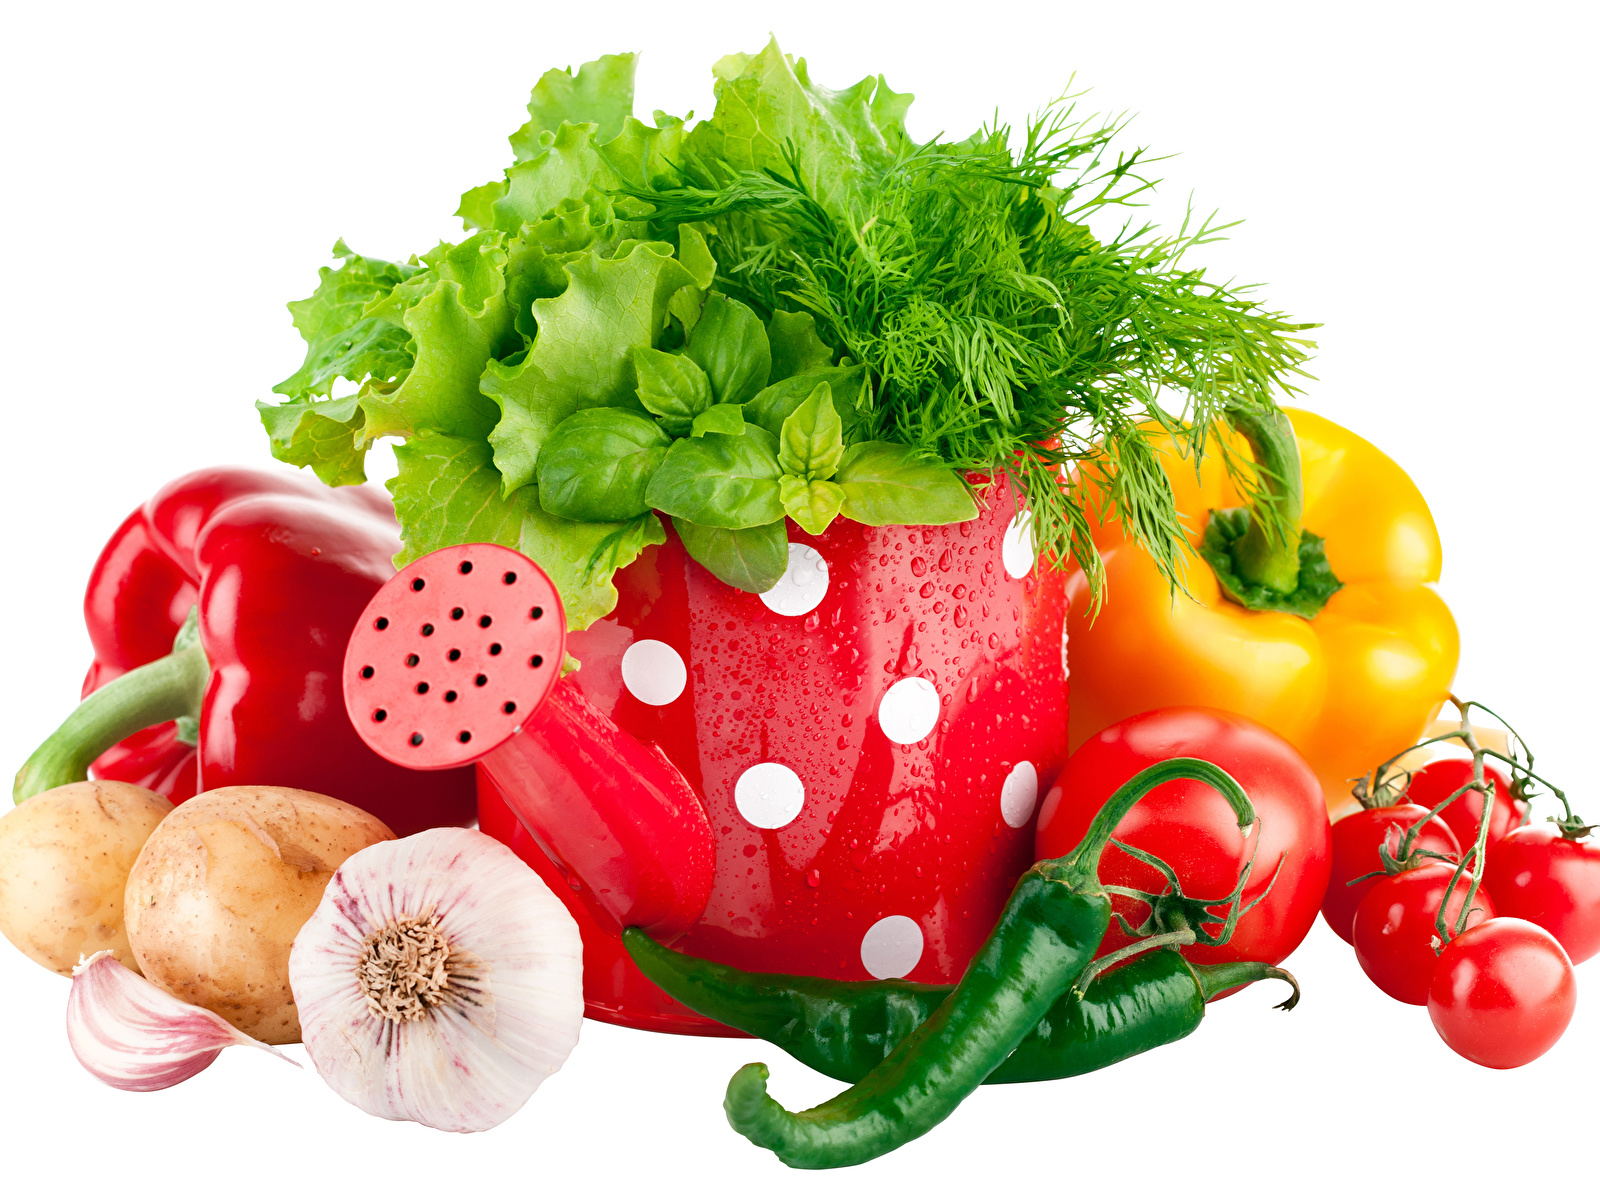 Images Onion Tomatoes Chili pepper Dill Garlic Food Vegetables Bell pepper White background 1600x1200 Allium sativum